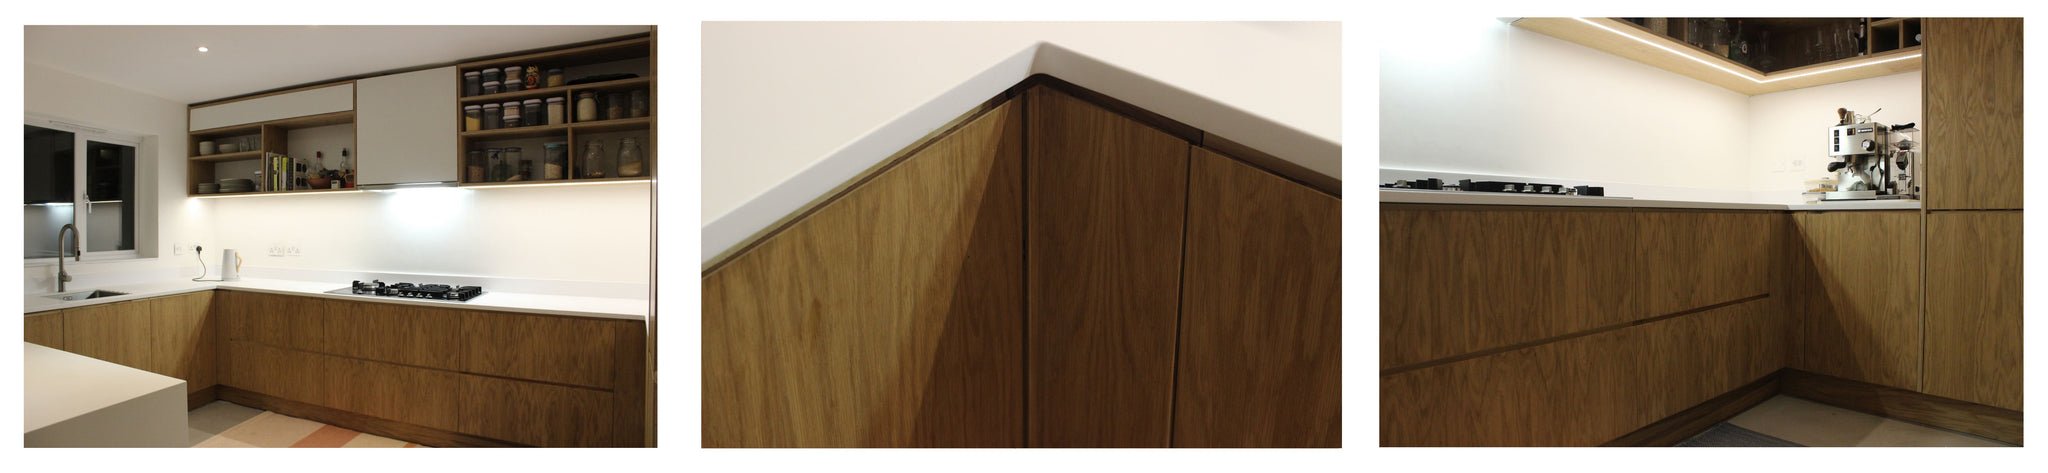 Bespoke handmade kitchen featuring Corian worktop and oak shelves. Made by Jon Grant London in Leyton, East London.